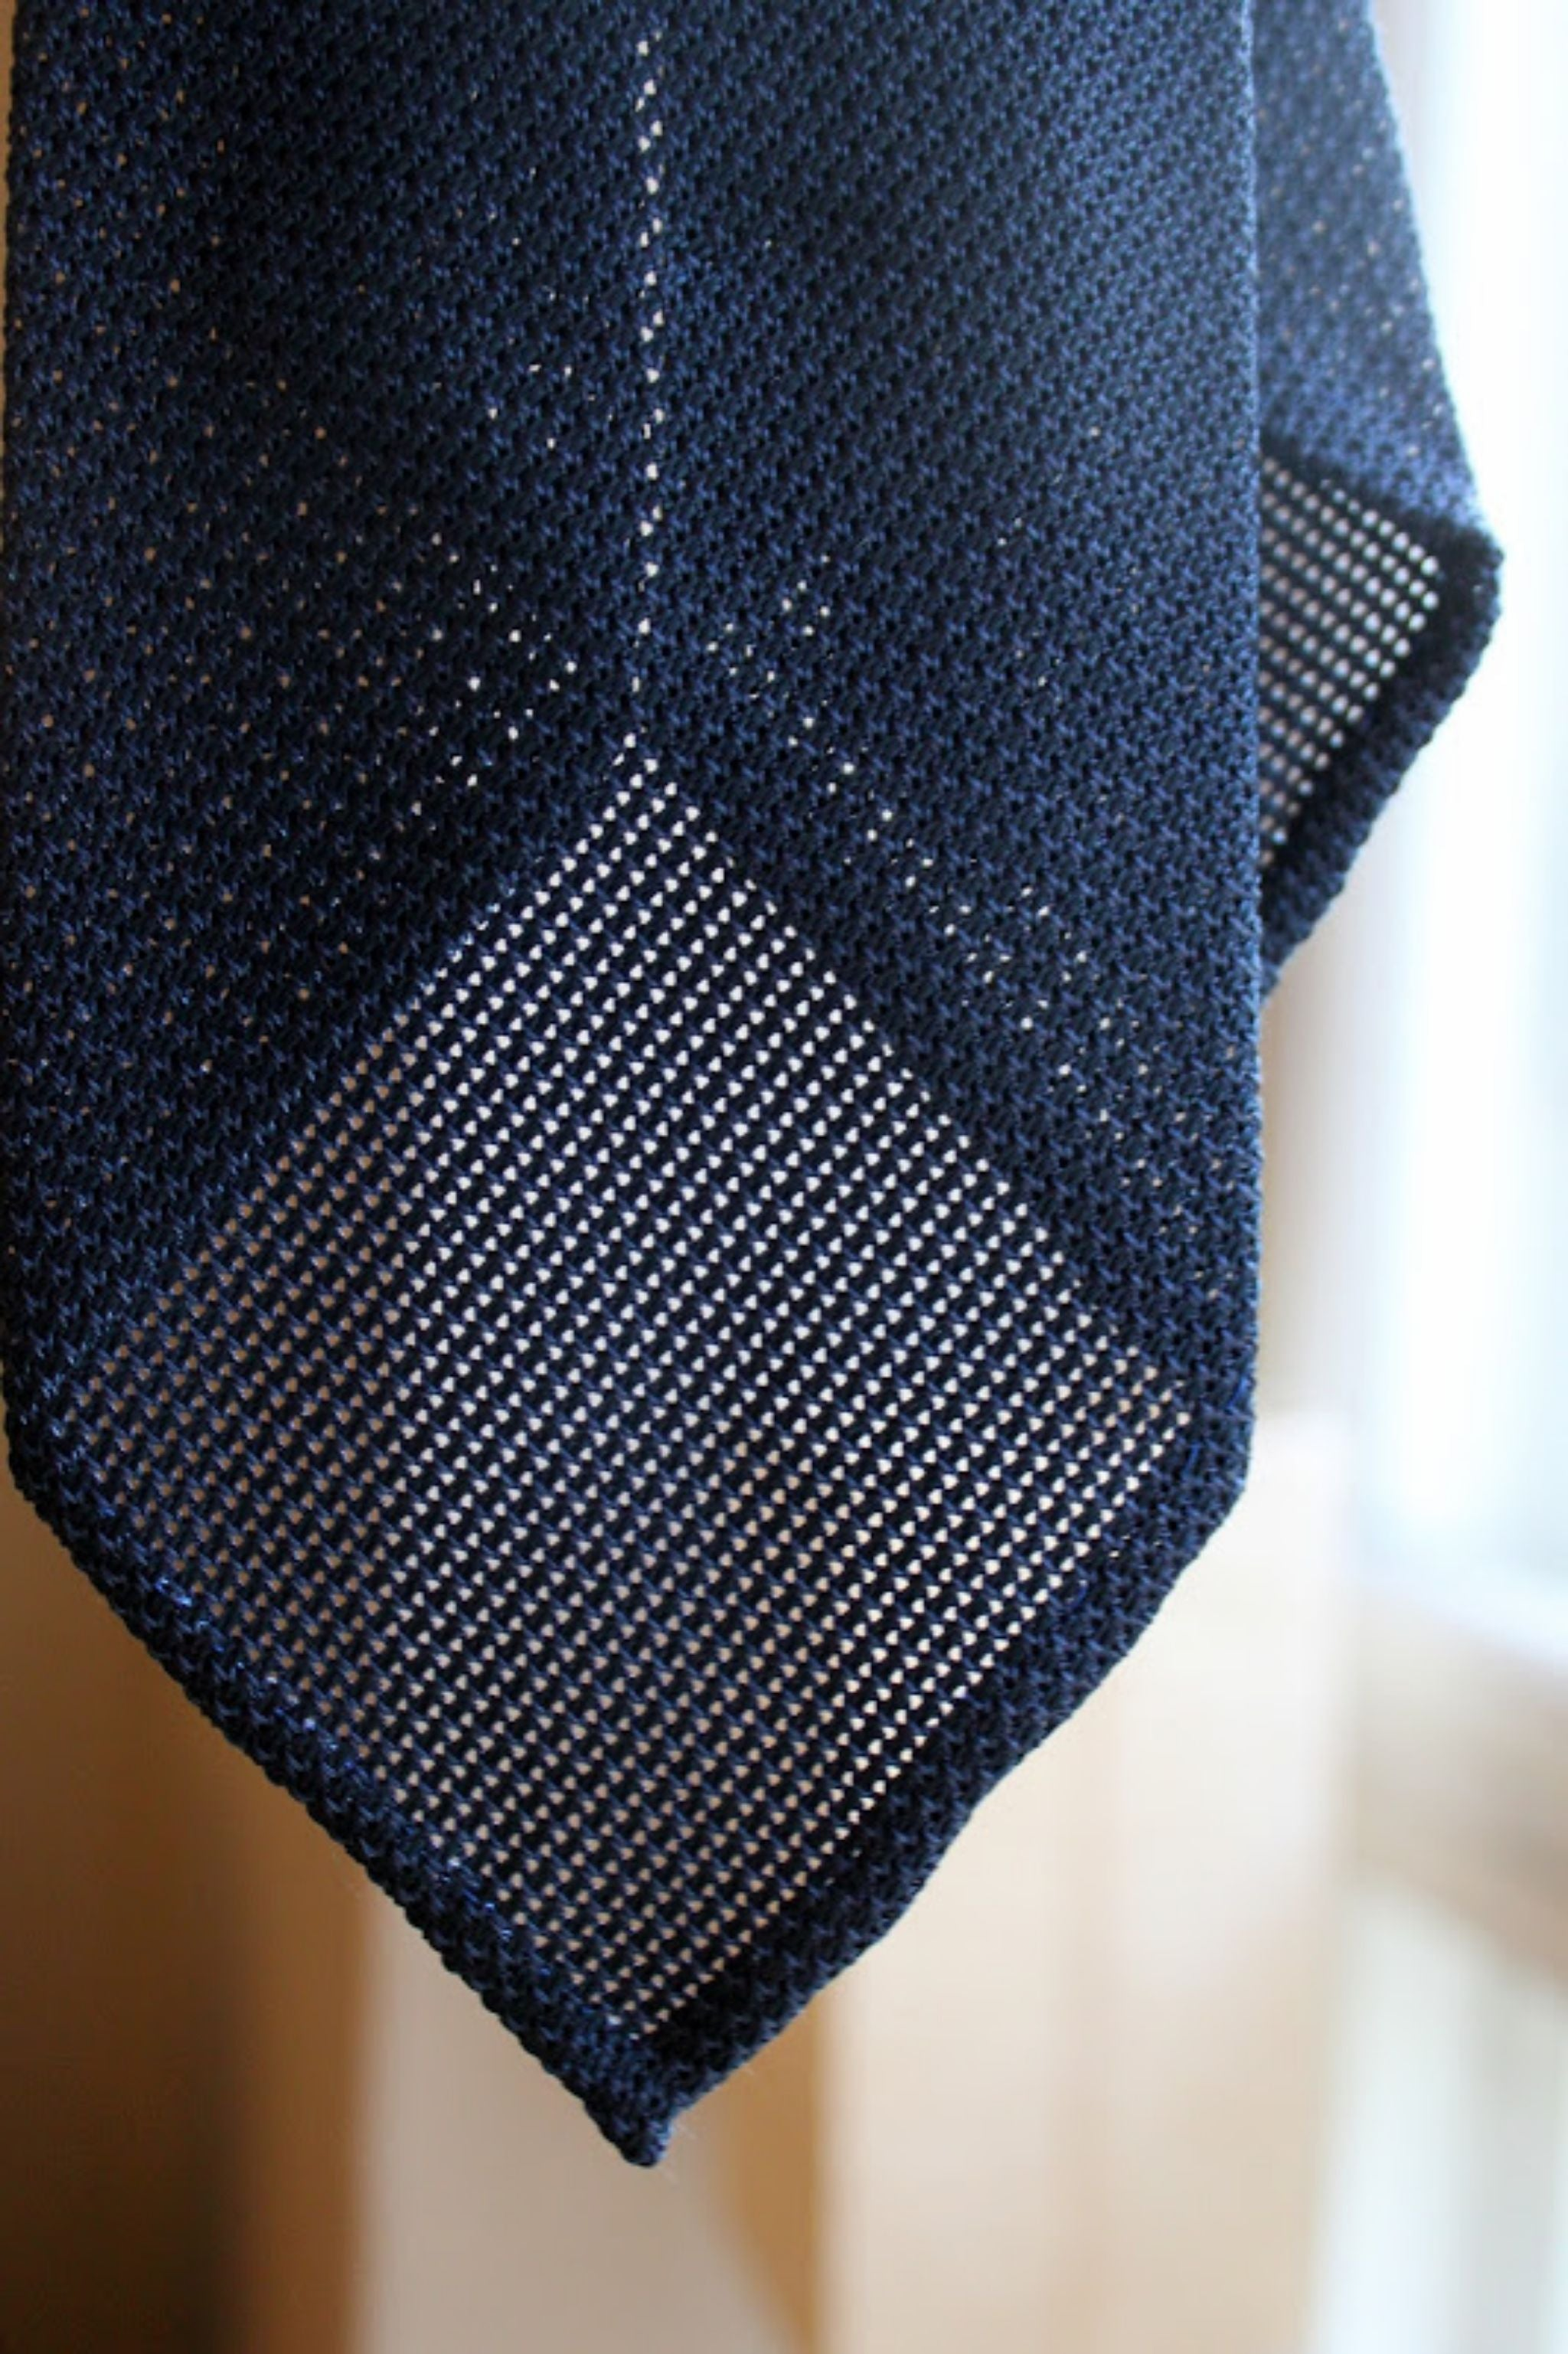 My new unlined navy blue grenadine Bespoke tie in detail